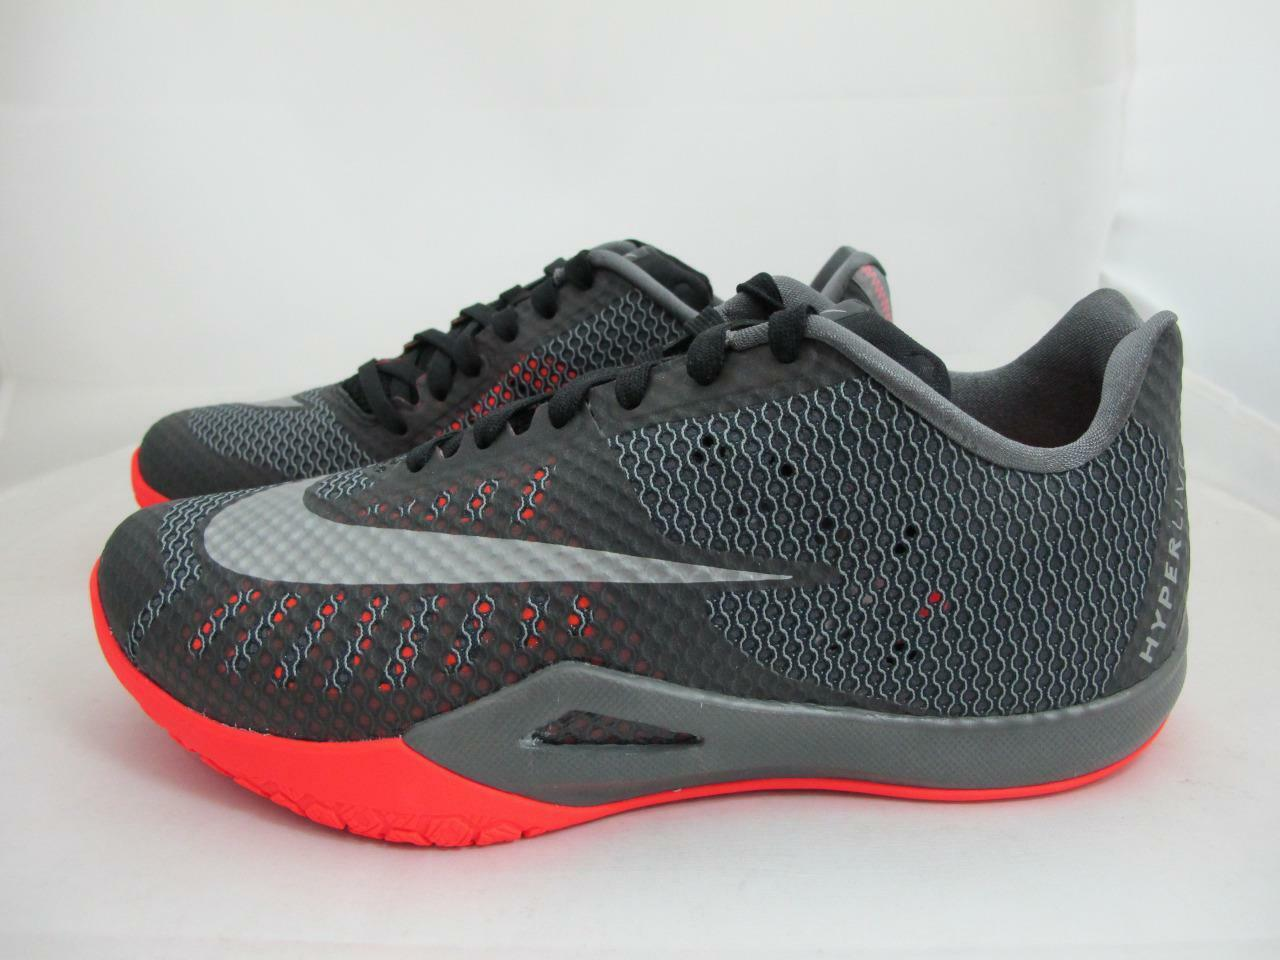 NEW MEN'S NIKE HYPERLIVE 819663-002 The most popular shoes for men and women best-selling model of the brand